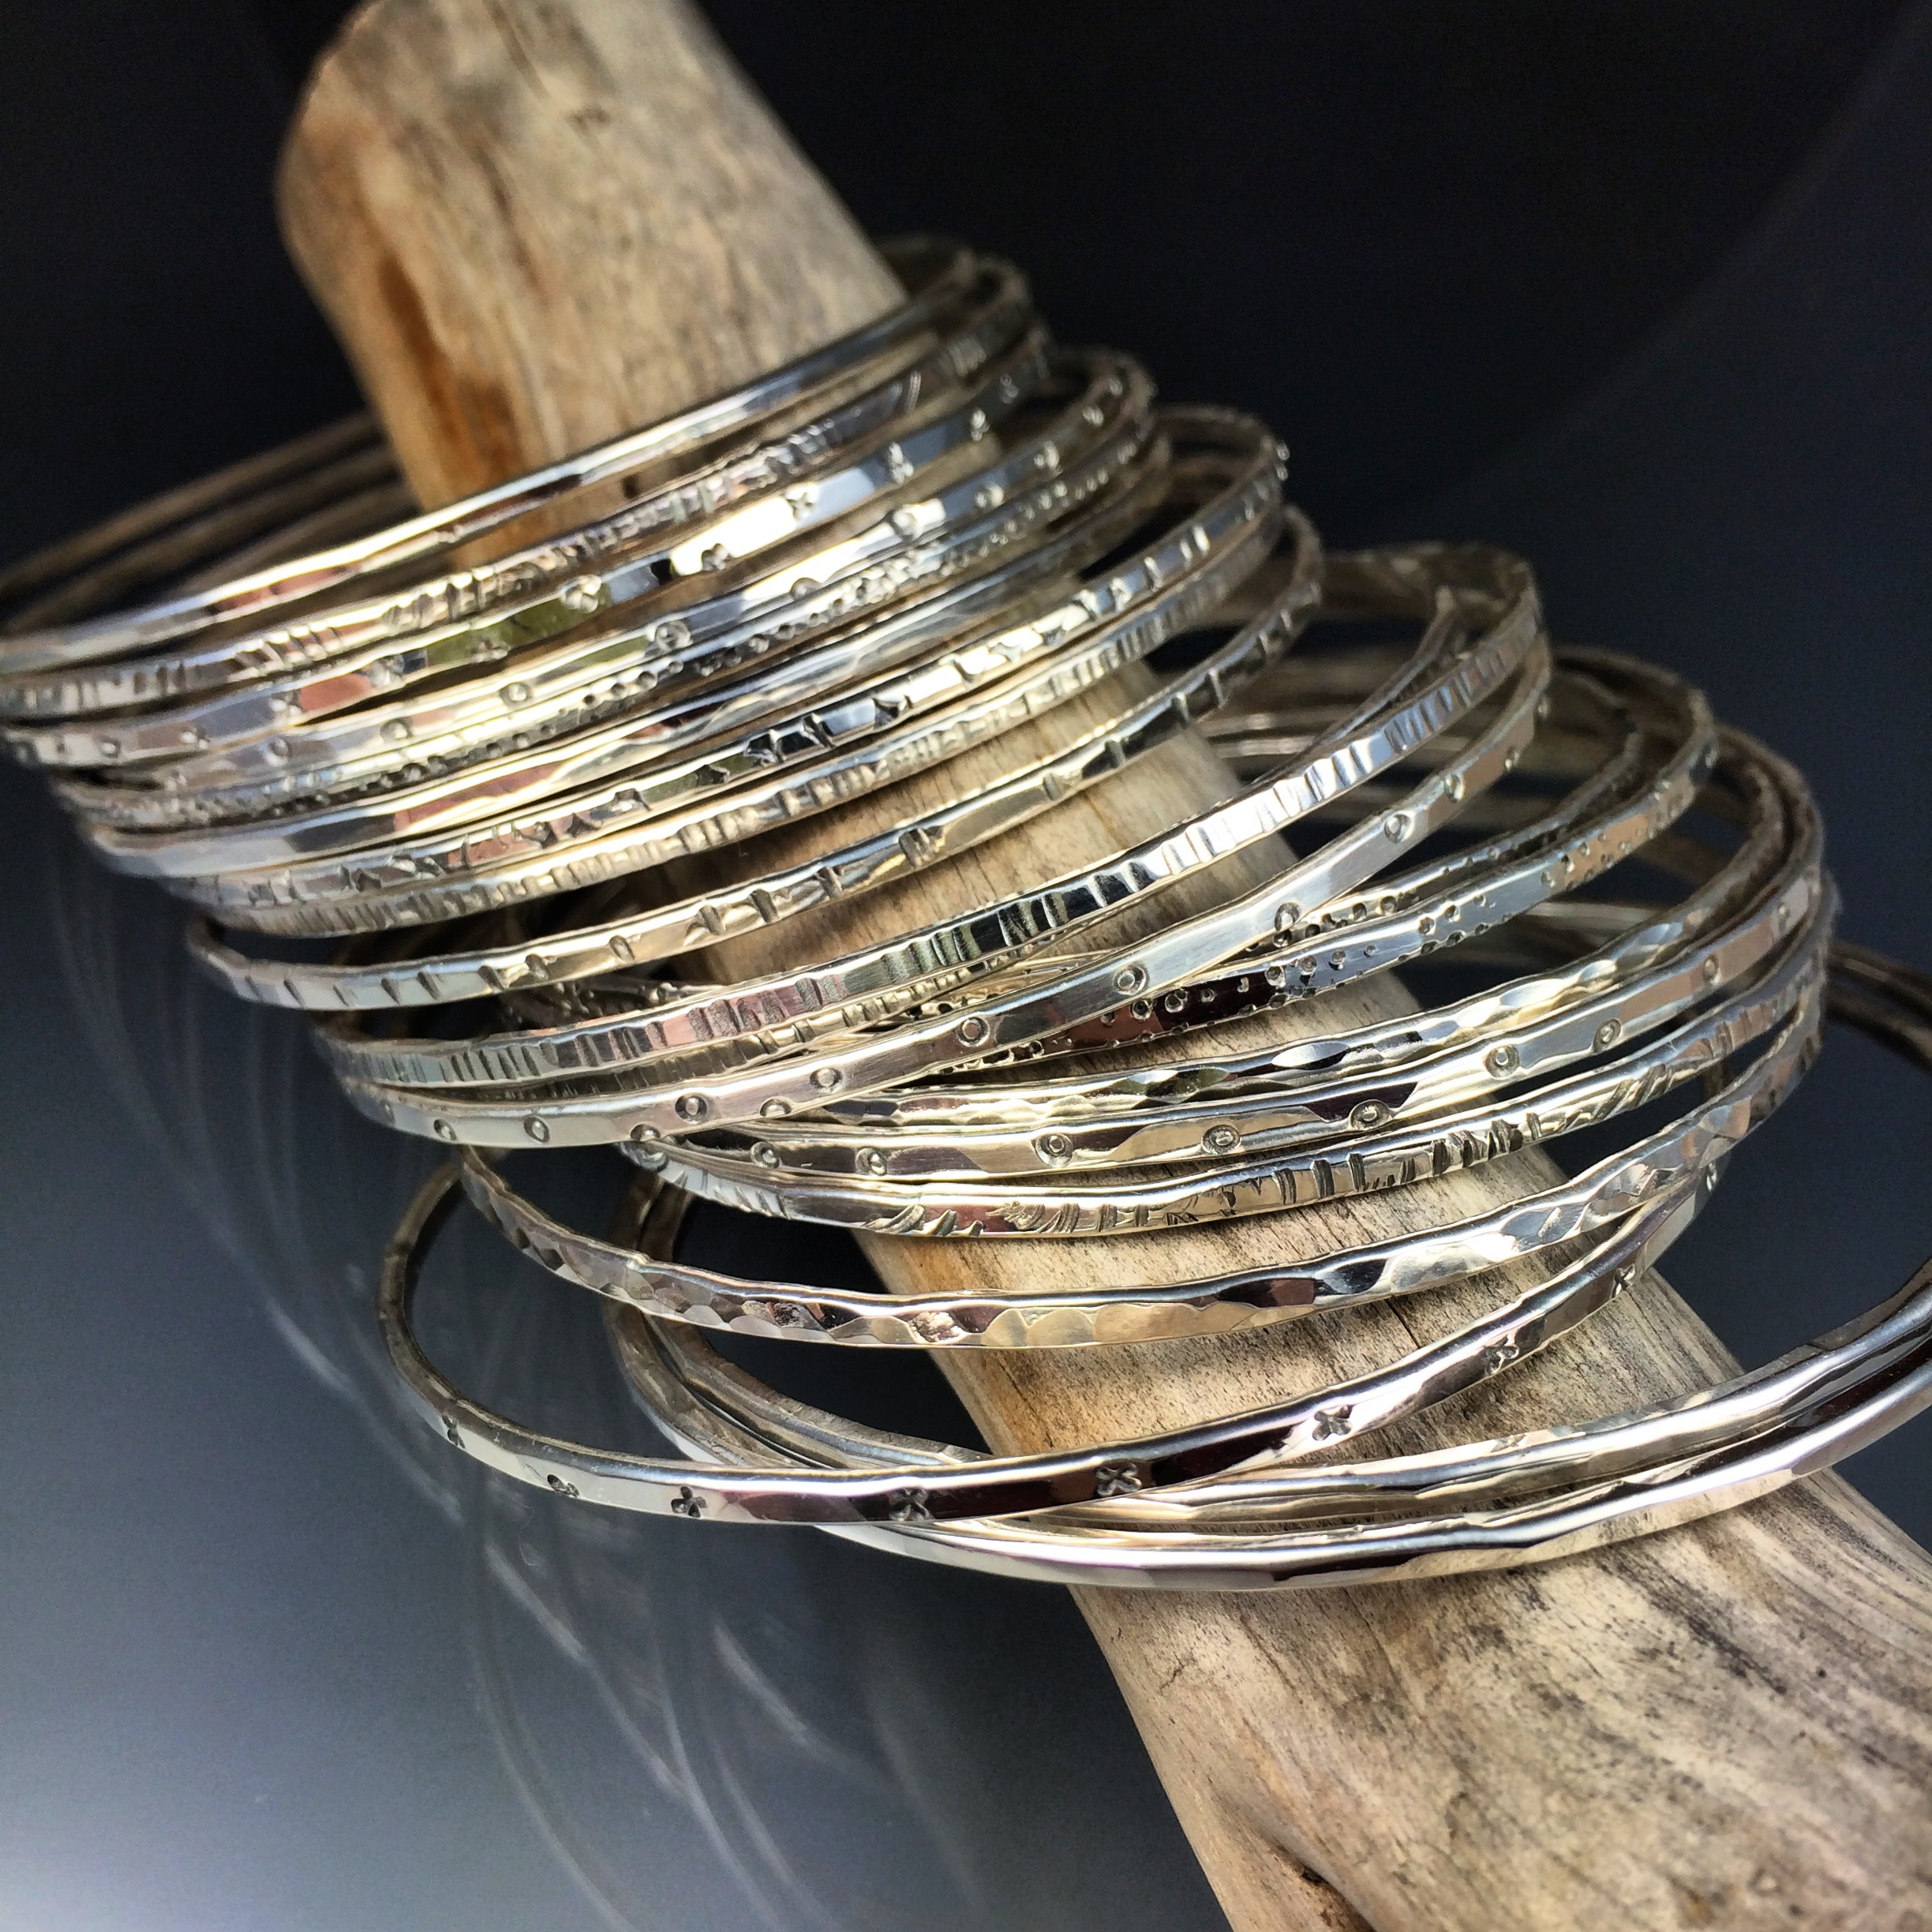 This 3 day workshop is $800. All materials are included (enough silver sheet and tubing to cap and core 4 beads and enough silver wire to make 3 bangles).  We supply lunch, plenty of drinks and snacks as well.  A $400 deposit is required to hold your spot in class. The balance is due a month before the workshop.  Cancellation Policy:  10% of fee is considered non-refundable in cases of withdrawal for all students up to 30 days of the workshop.  Course fee is non-refundable within 30 days of the workshop unless I am able to fill the student's spot, in which case #1 above still applies.    Classes are limited to 6 students.